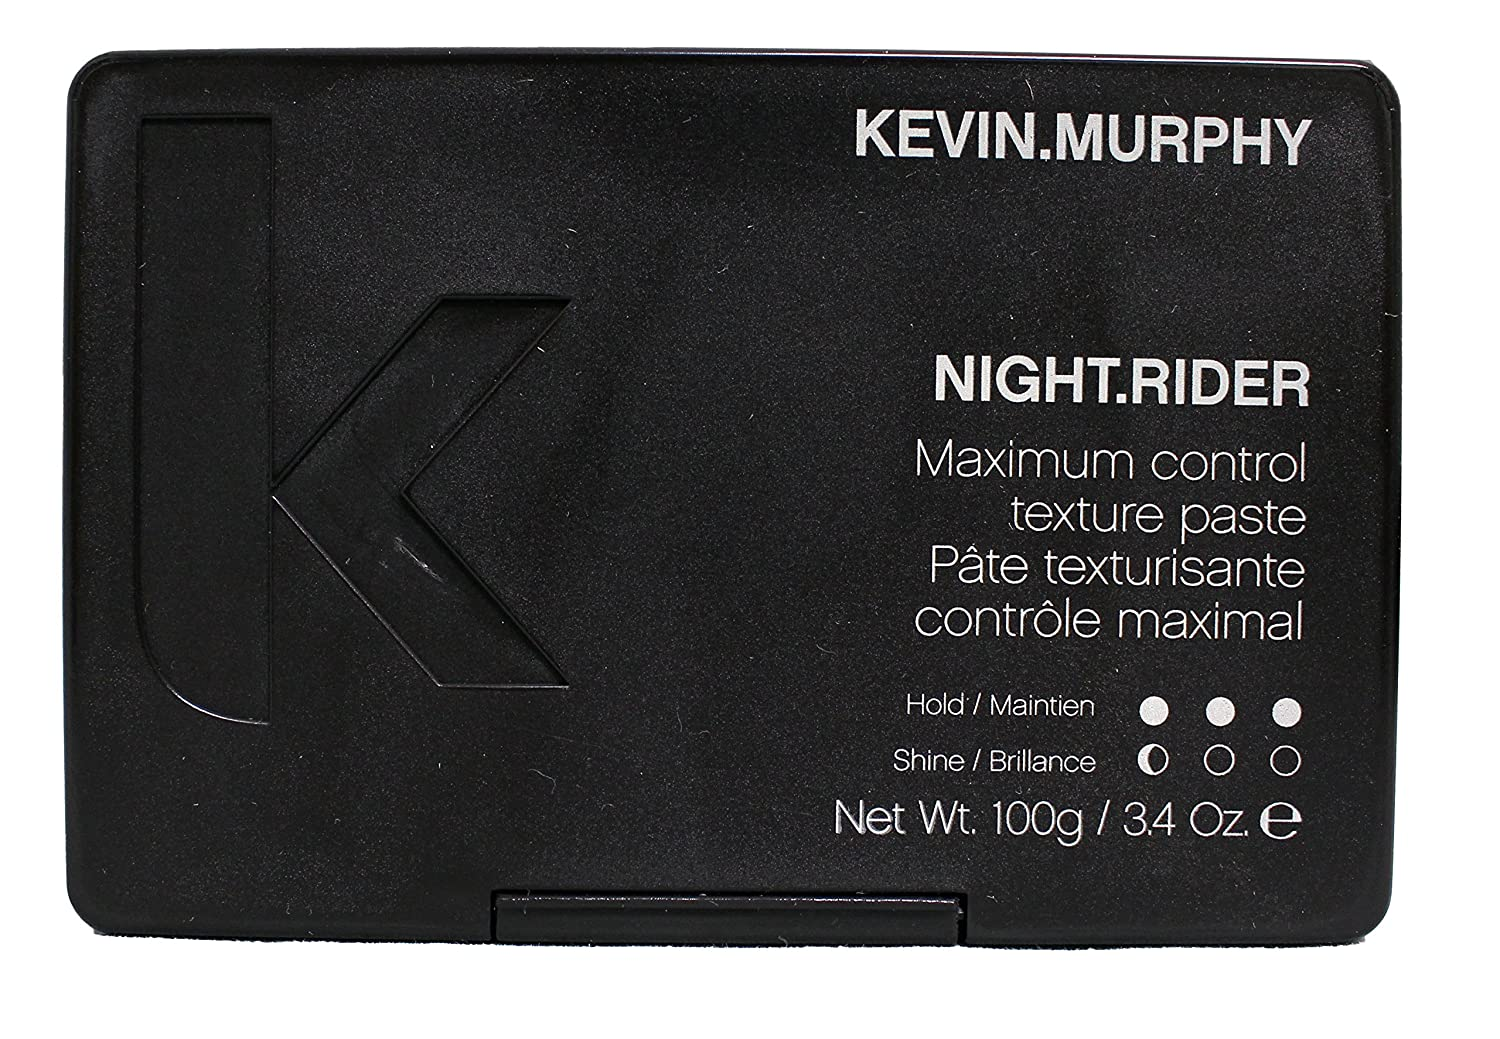 Kevin Murphy Night Rider Matte Texture Paste, Firm Hold, 3.4 oz. kevin murpy 885201441377